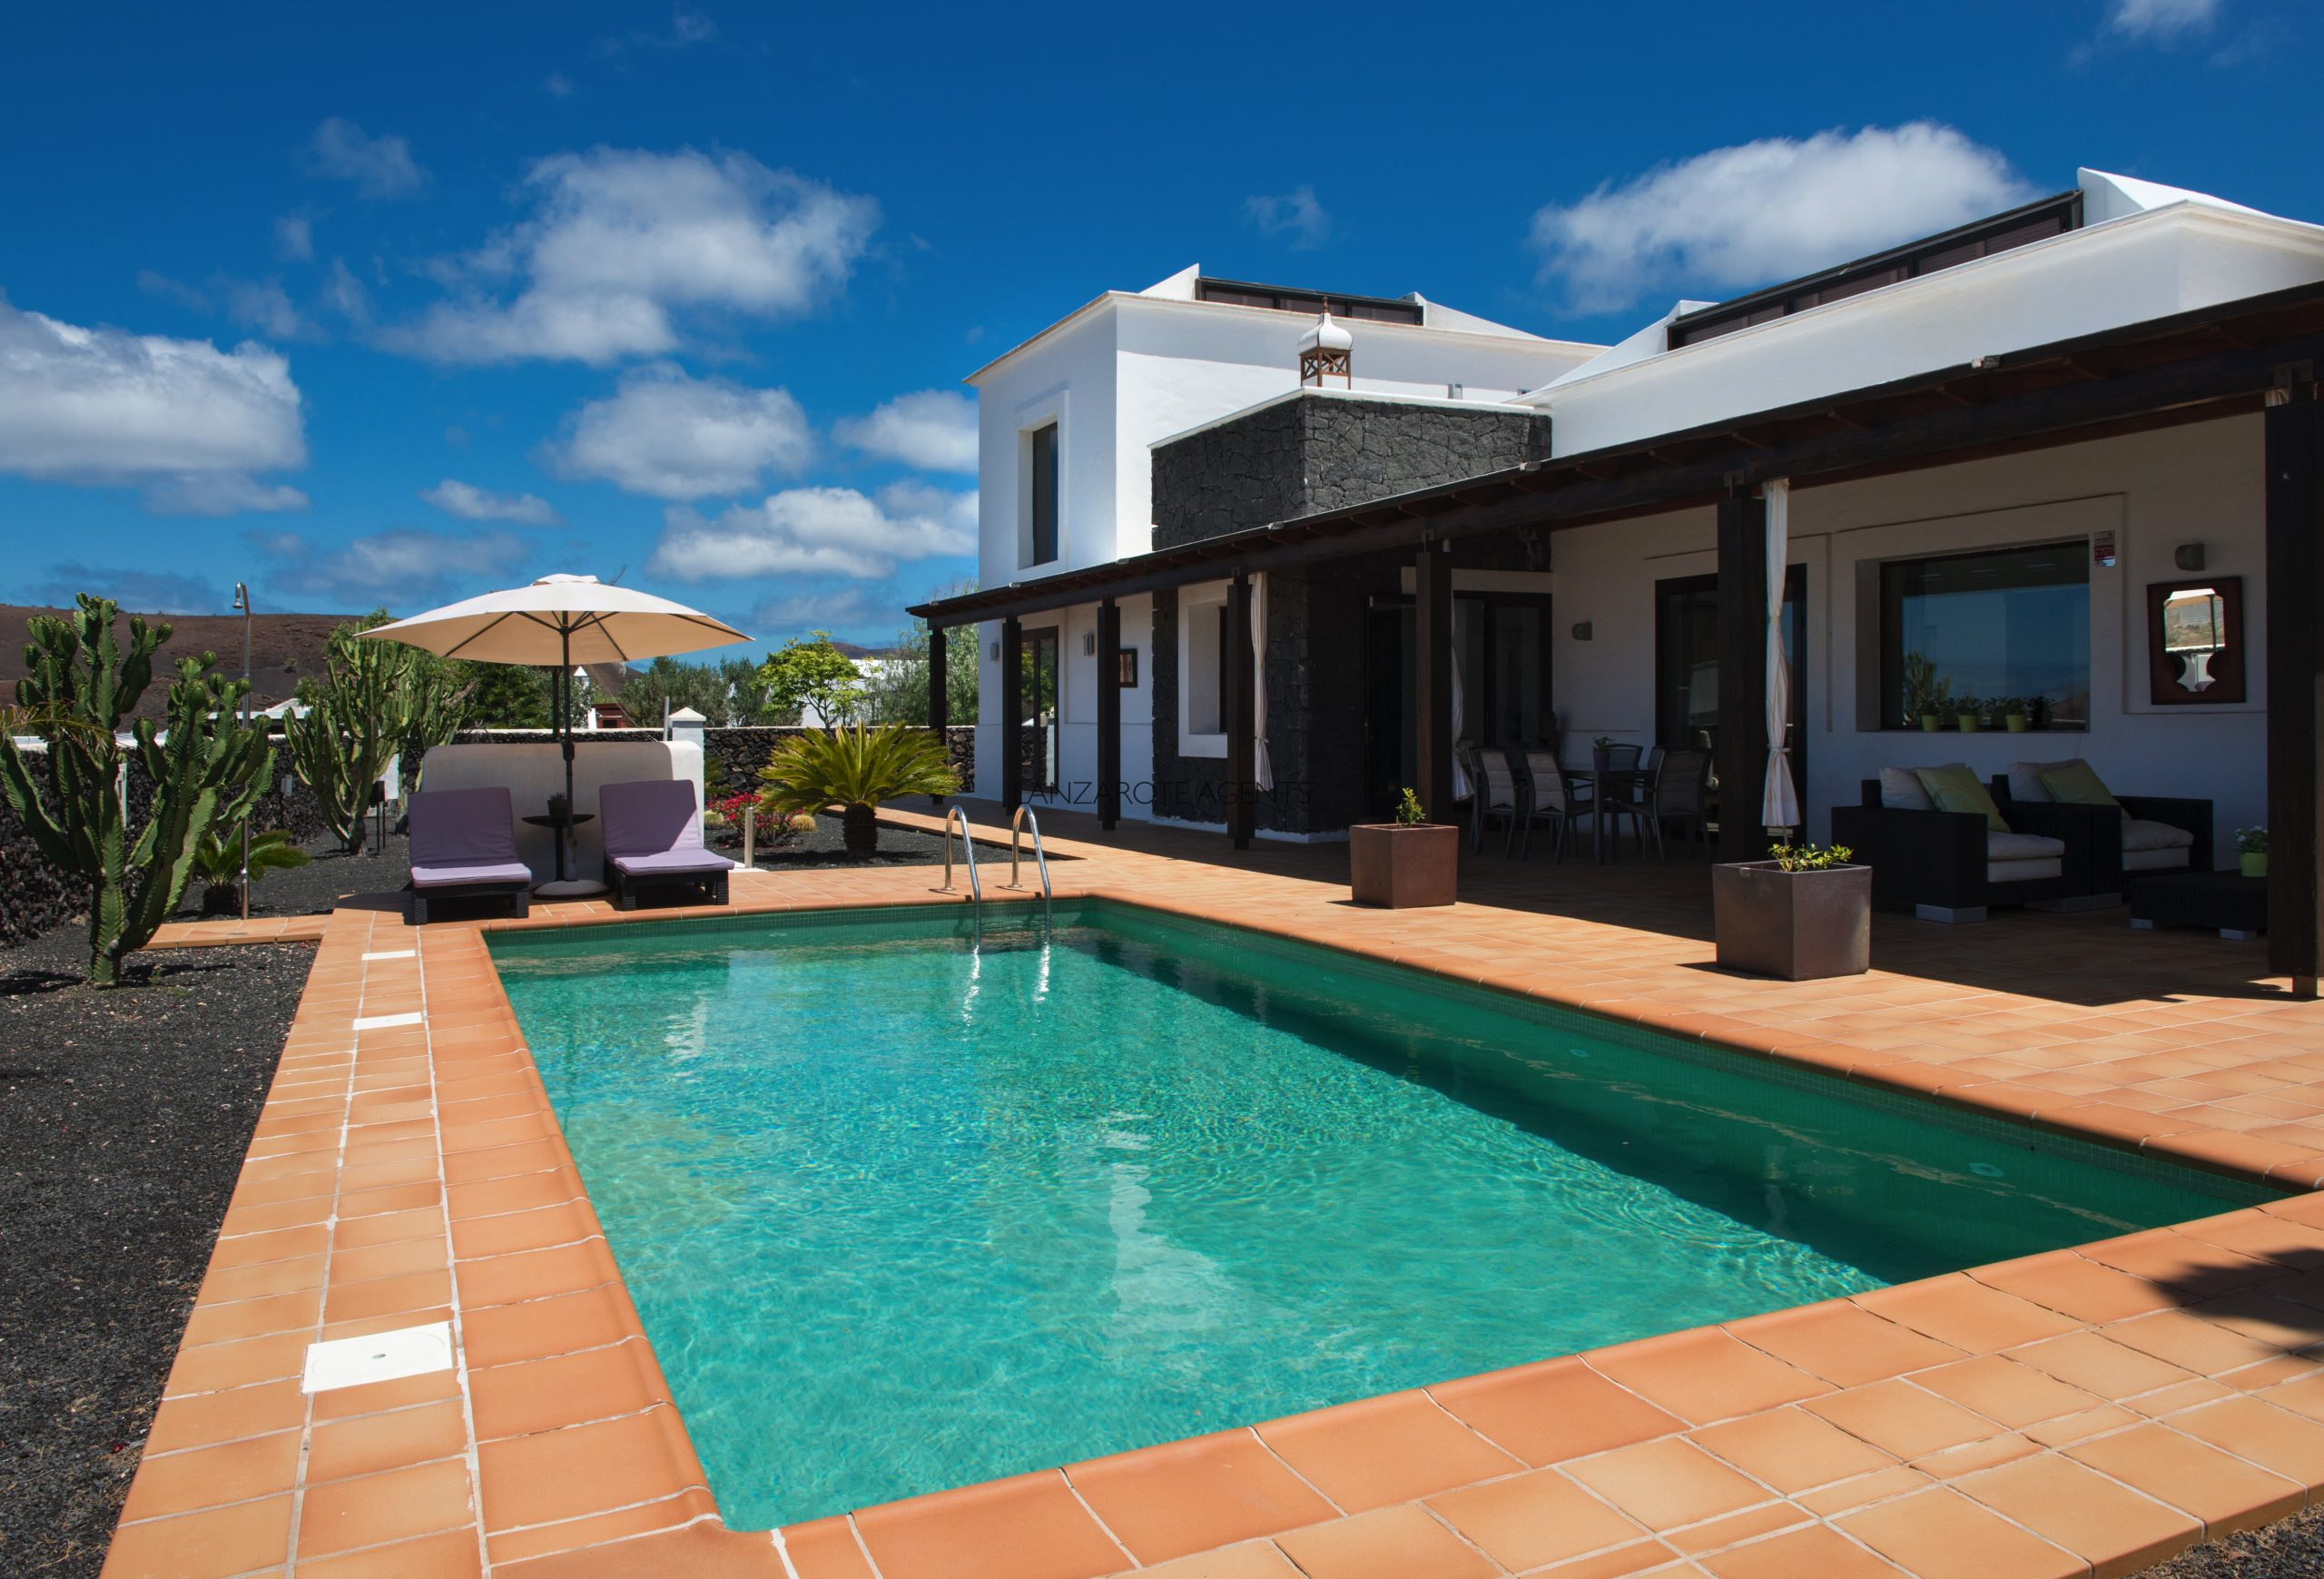 Stunning Detached Three Bedroom Villa in Yaiza with A Self Contained Apartment, Private Pool and Garage.